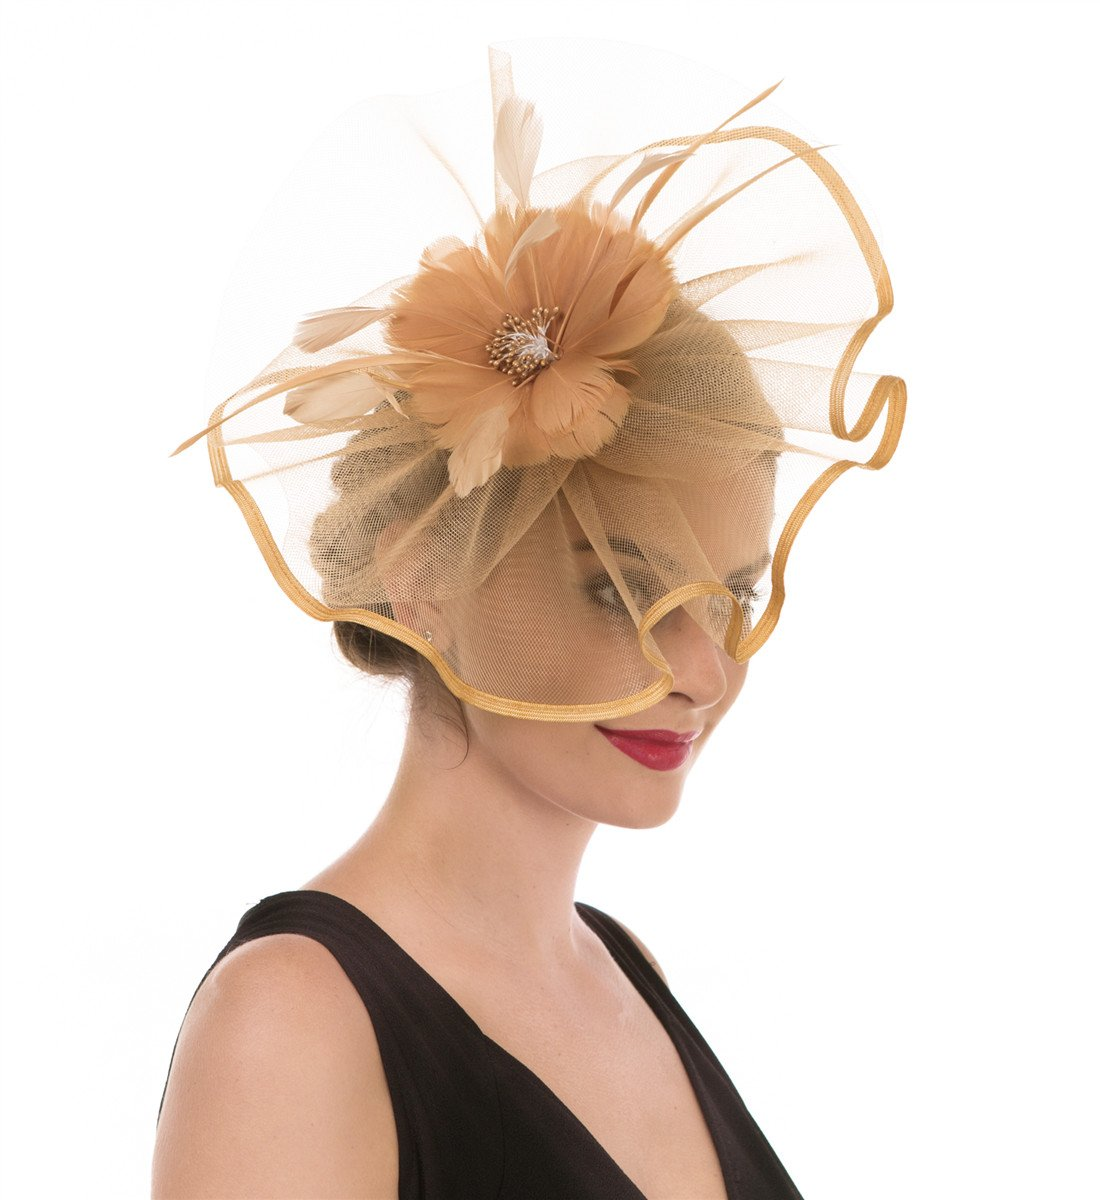 SAFERIN Fascinator Hat Feather Mesh Net Veil Party Hat Flower Derby Hat with Clip and Hairband for Women (TA1-Large Size Khaki Feather Mesh)